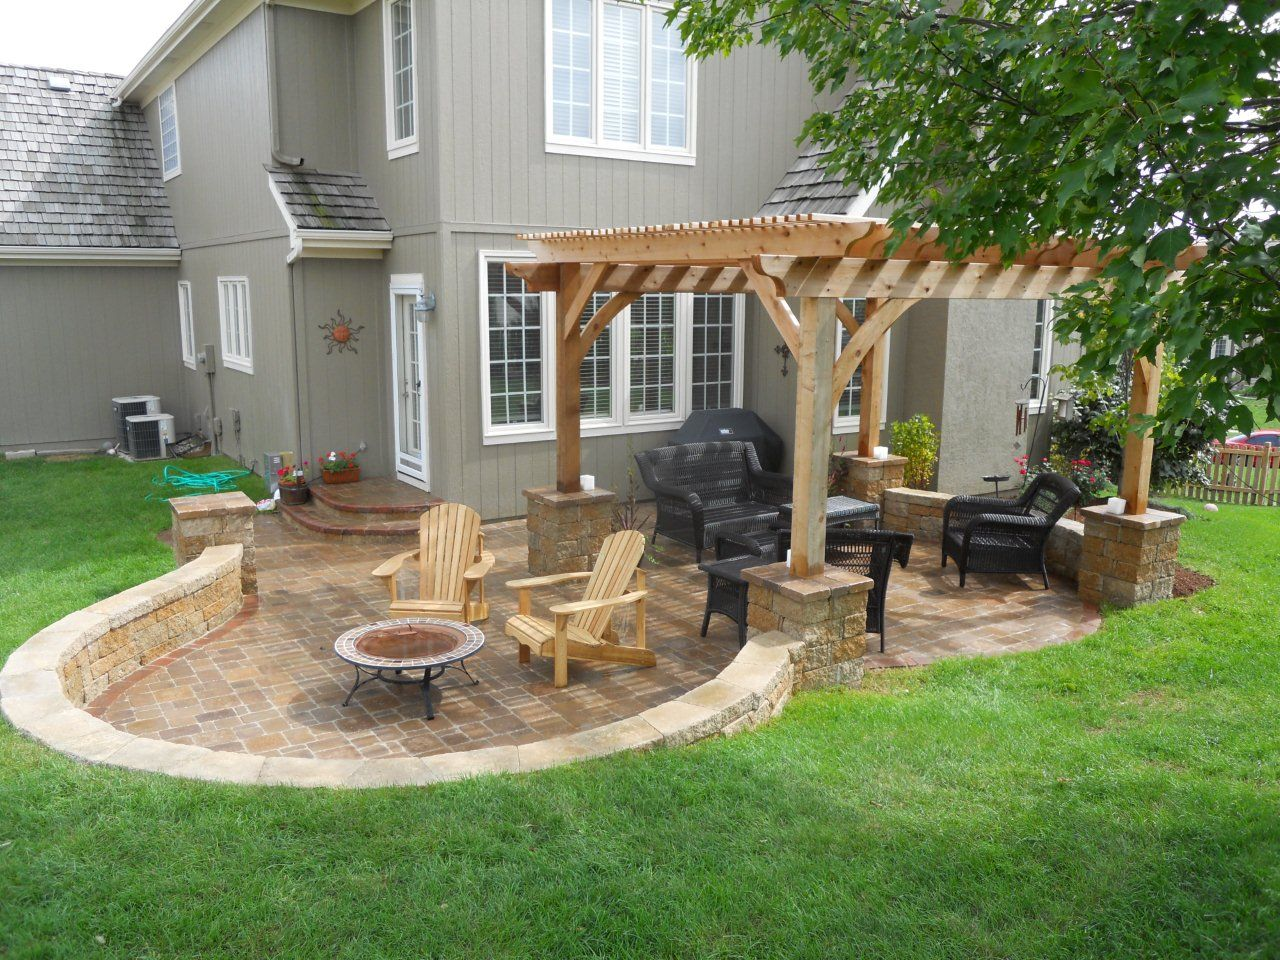 Small backyard covered patio ideas - 22 Awesome Pergola Patio Ideas More